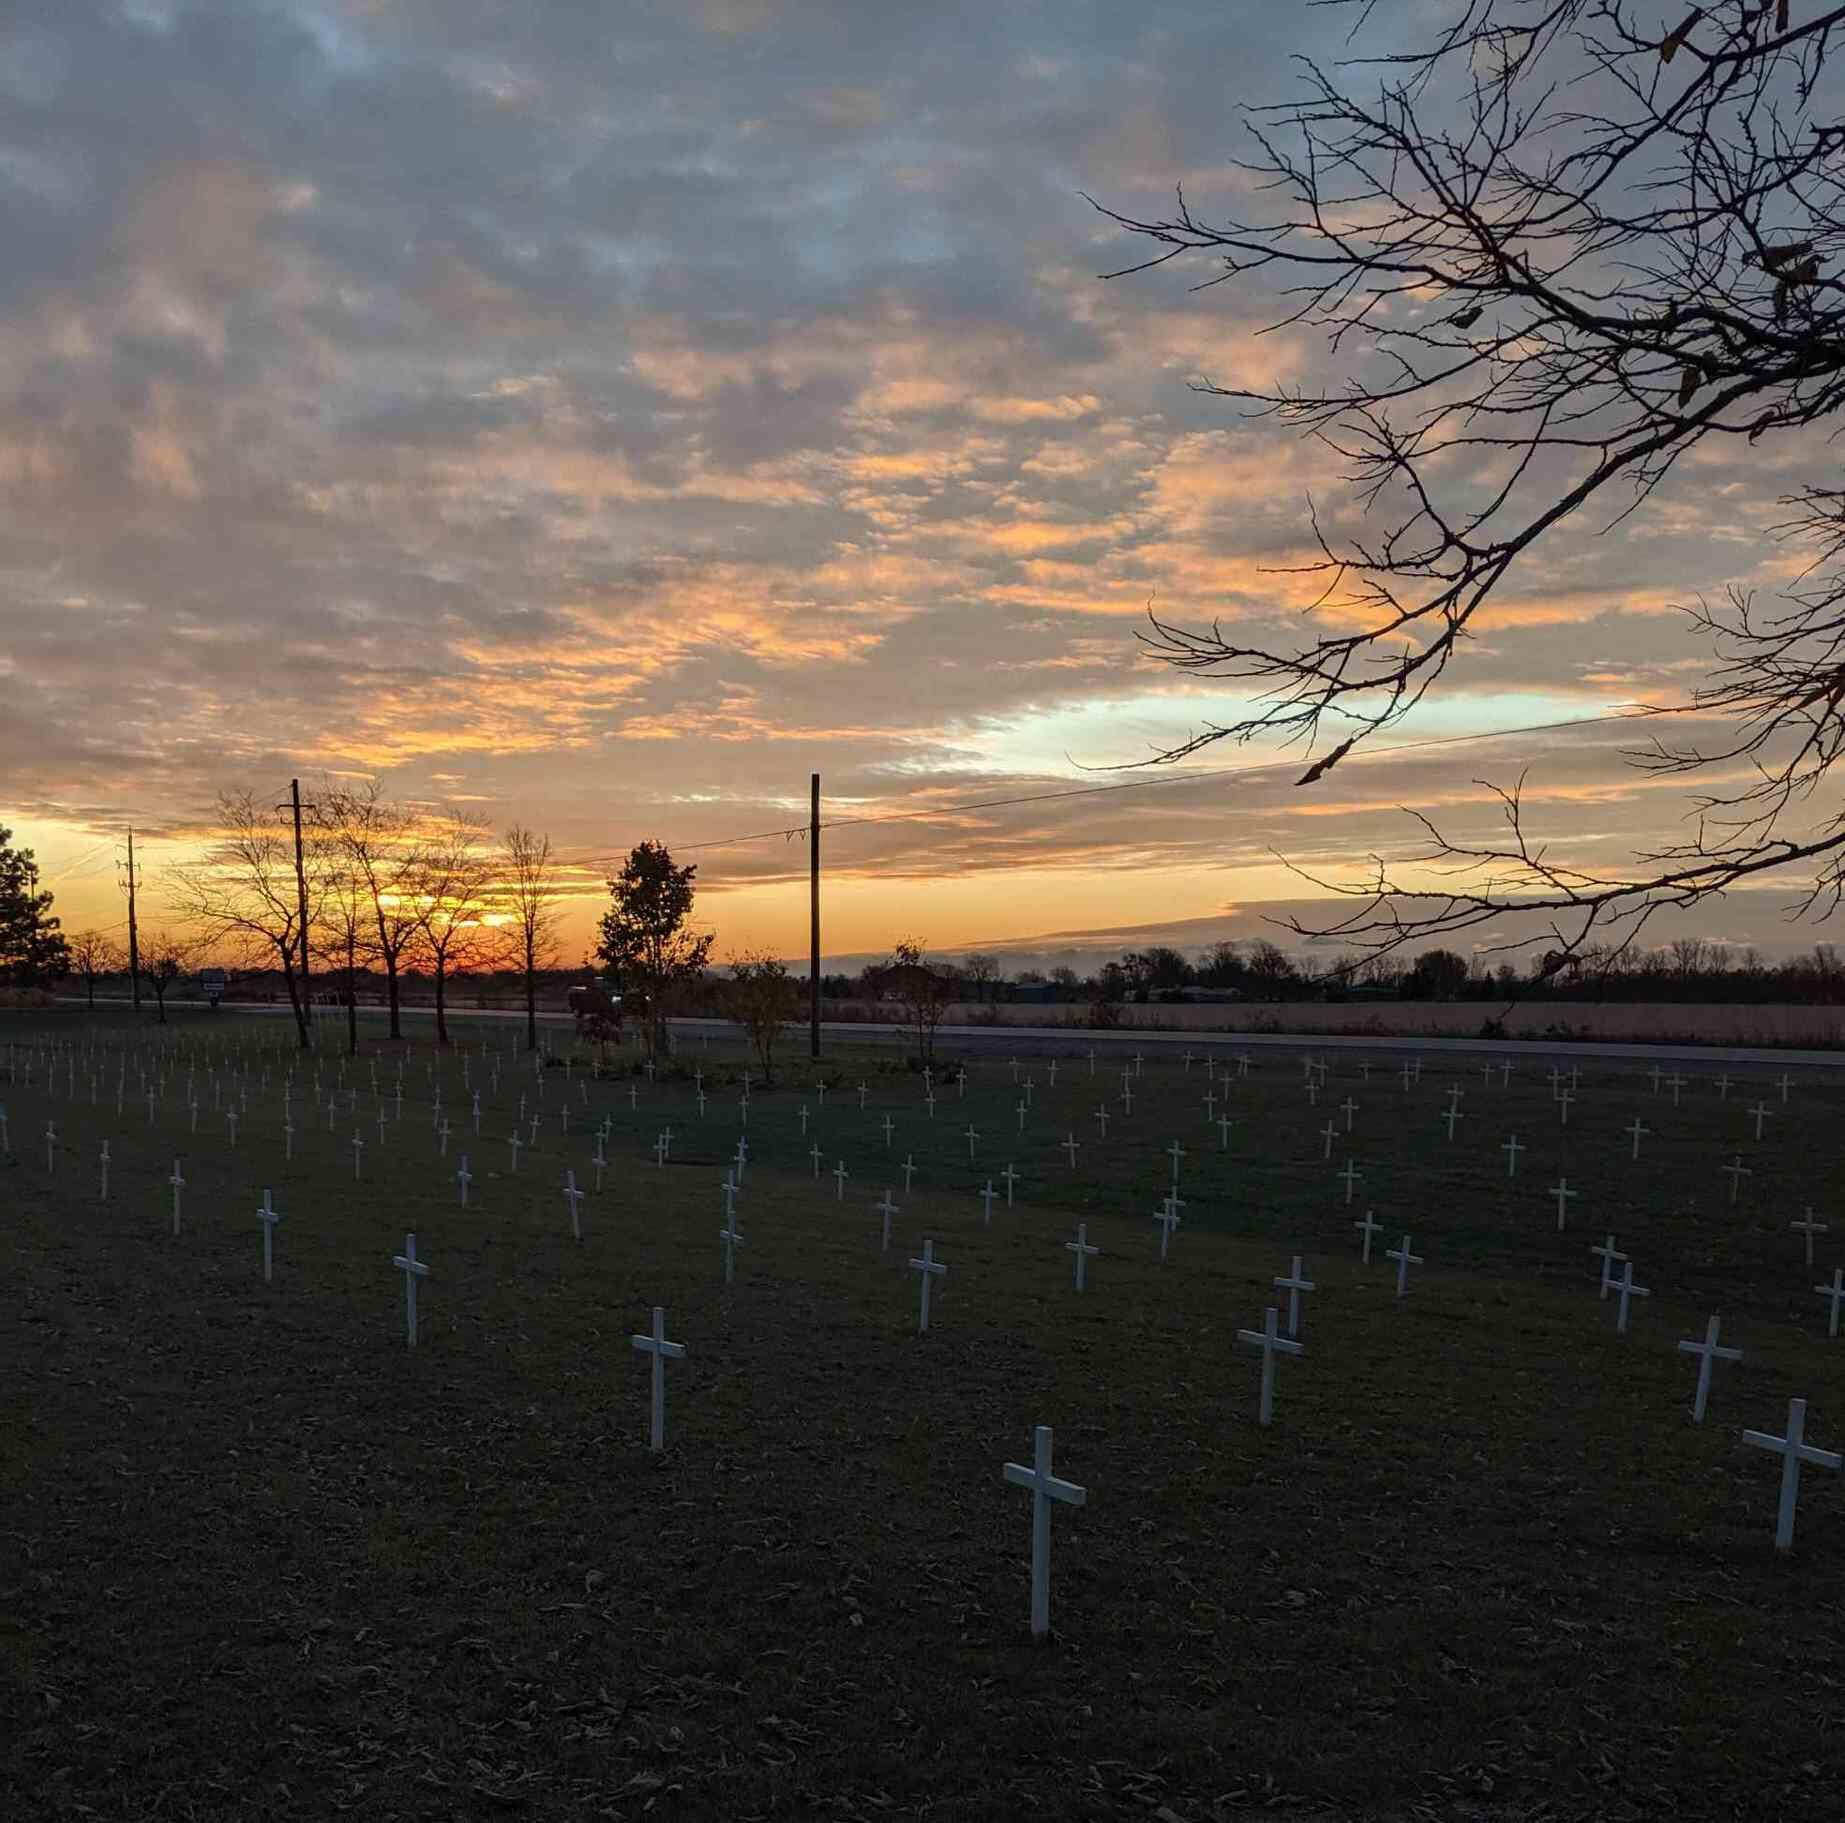 AM800-News-Villanova-Remembrance-Day-Crosses-Twitter.jpg